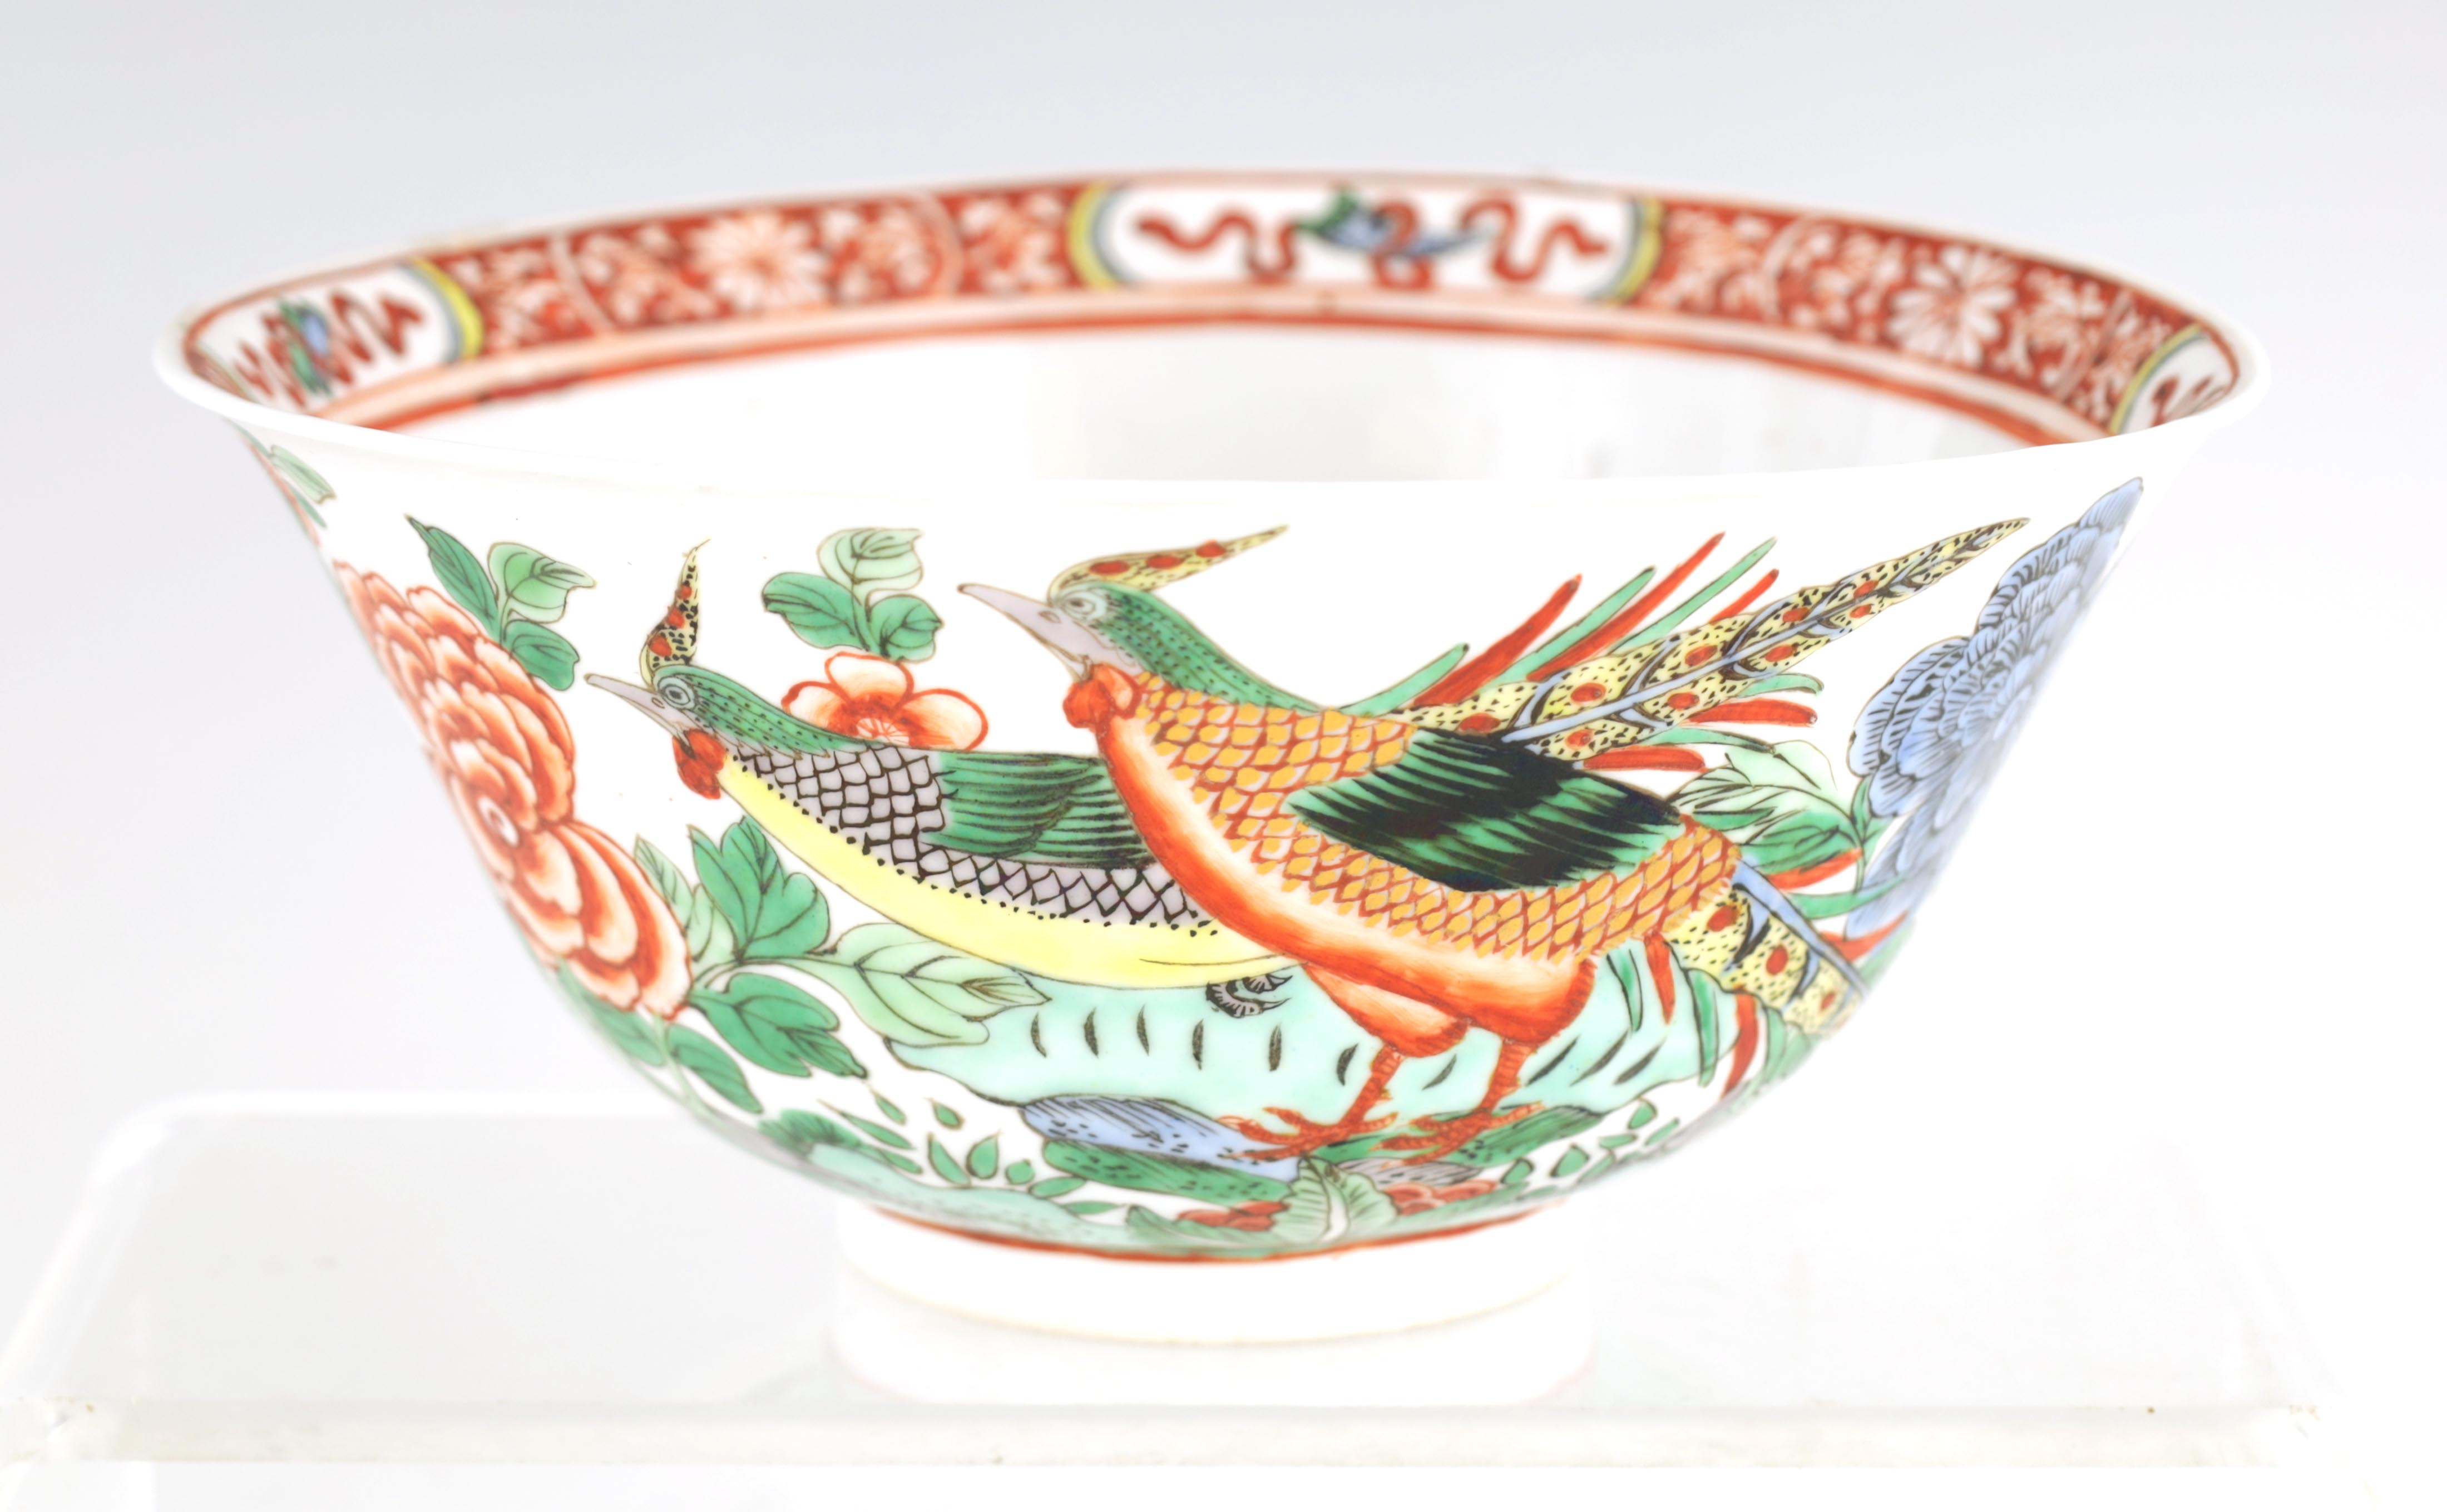 AN 18TH CENTURY CHINESE FAMILLE VERTE PORCELAIN BOWL BEARING KANGXI MARKS decorated with birds